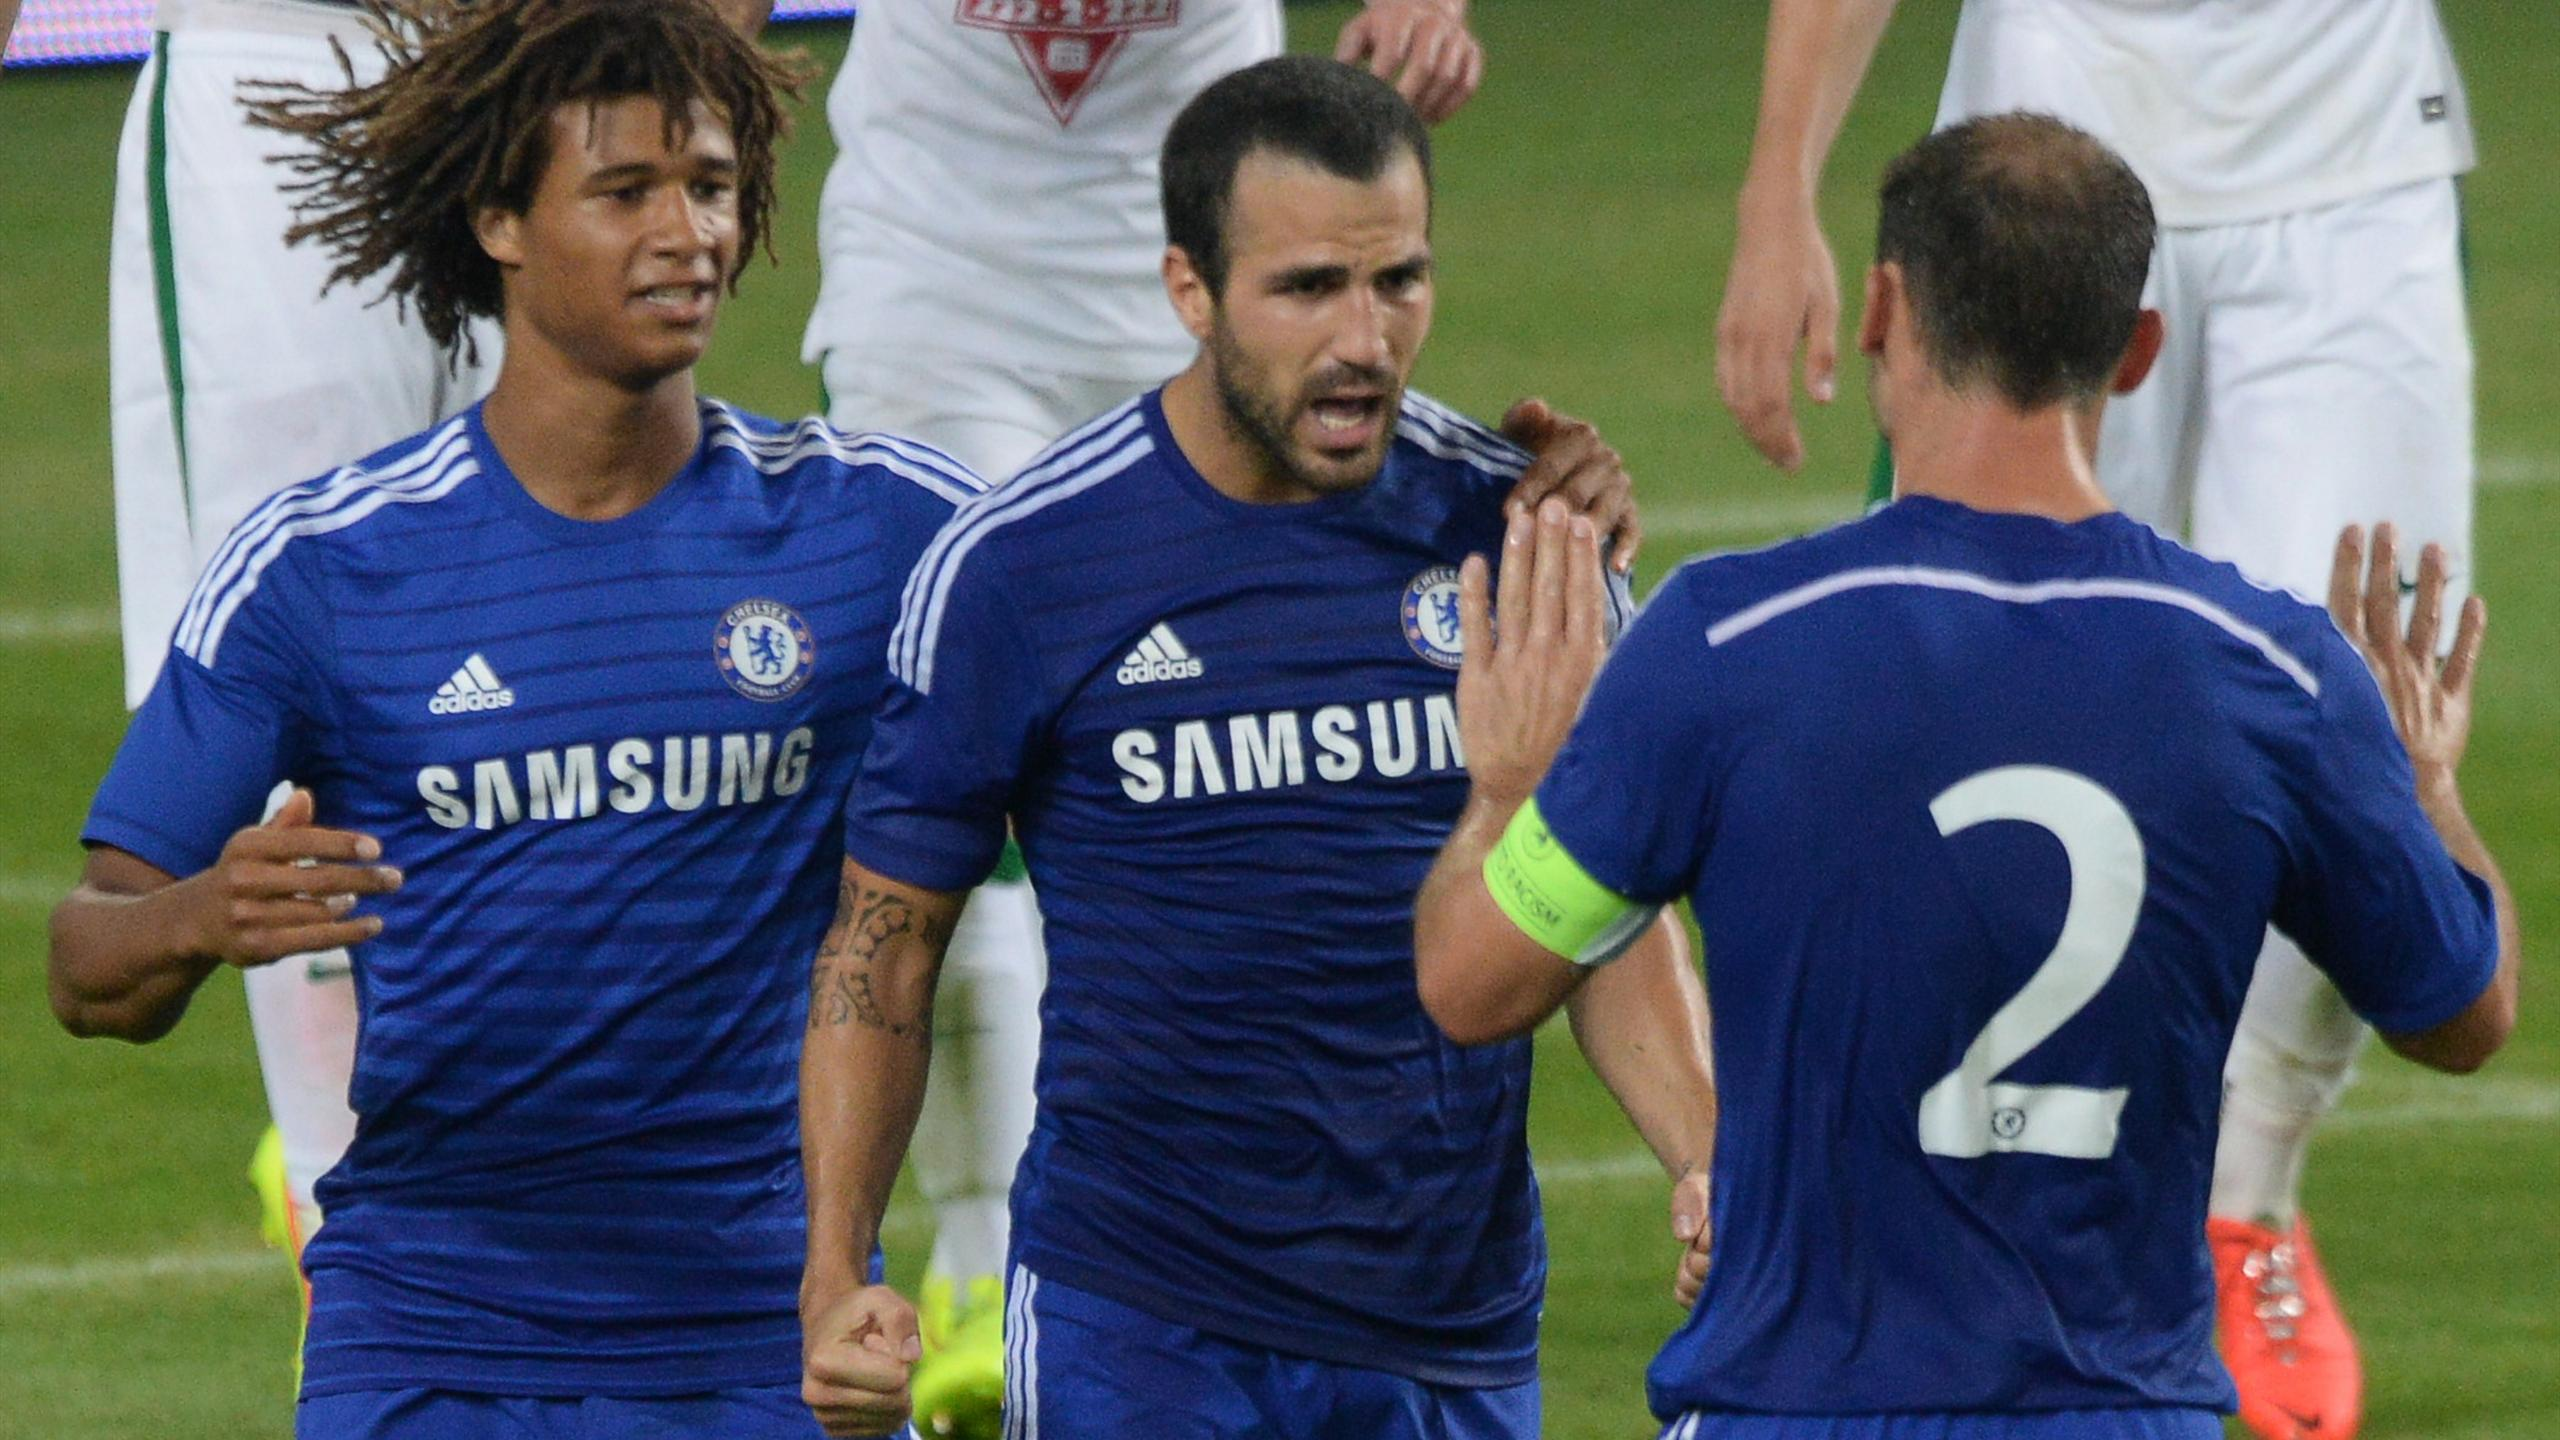 Friendly match - Ramires and Fabregas goals see Chelsea edge Ferencvaros